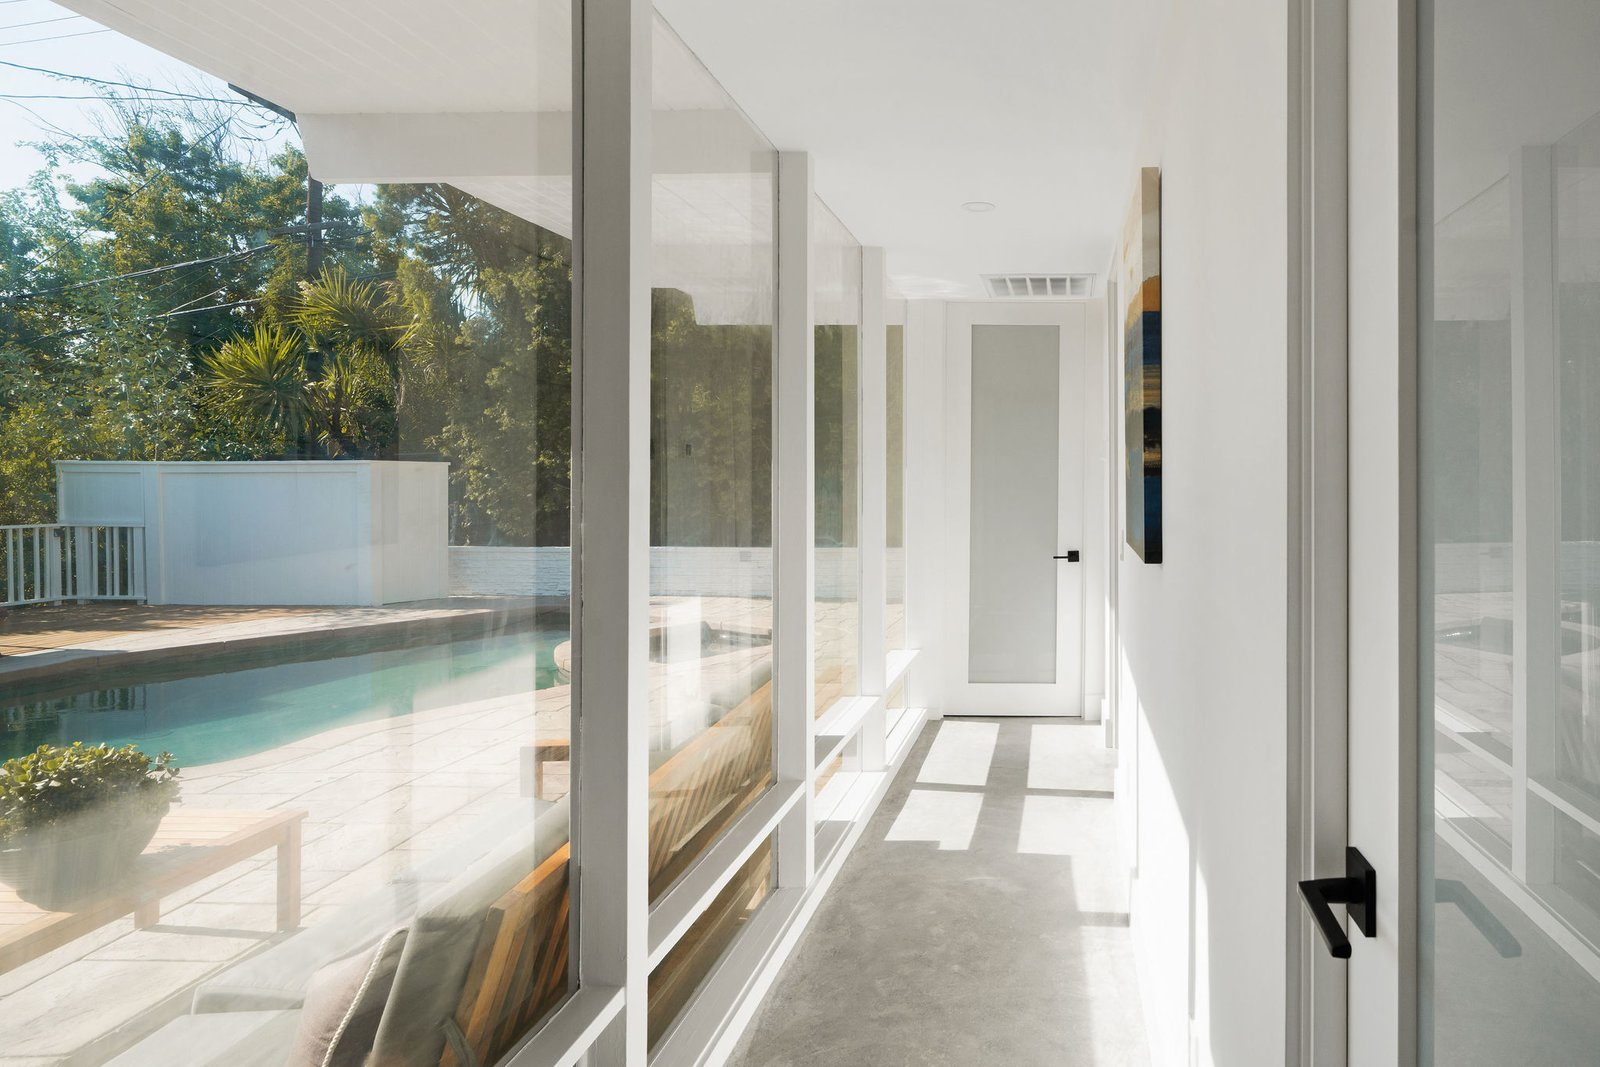 A glass-walled hallway connects several of the bedrooms with the main living area.  Photo 22 of 25 in Before & After: Two Brothers List Their Swanky Midcentury Bachelor Pad for $1.6M